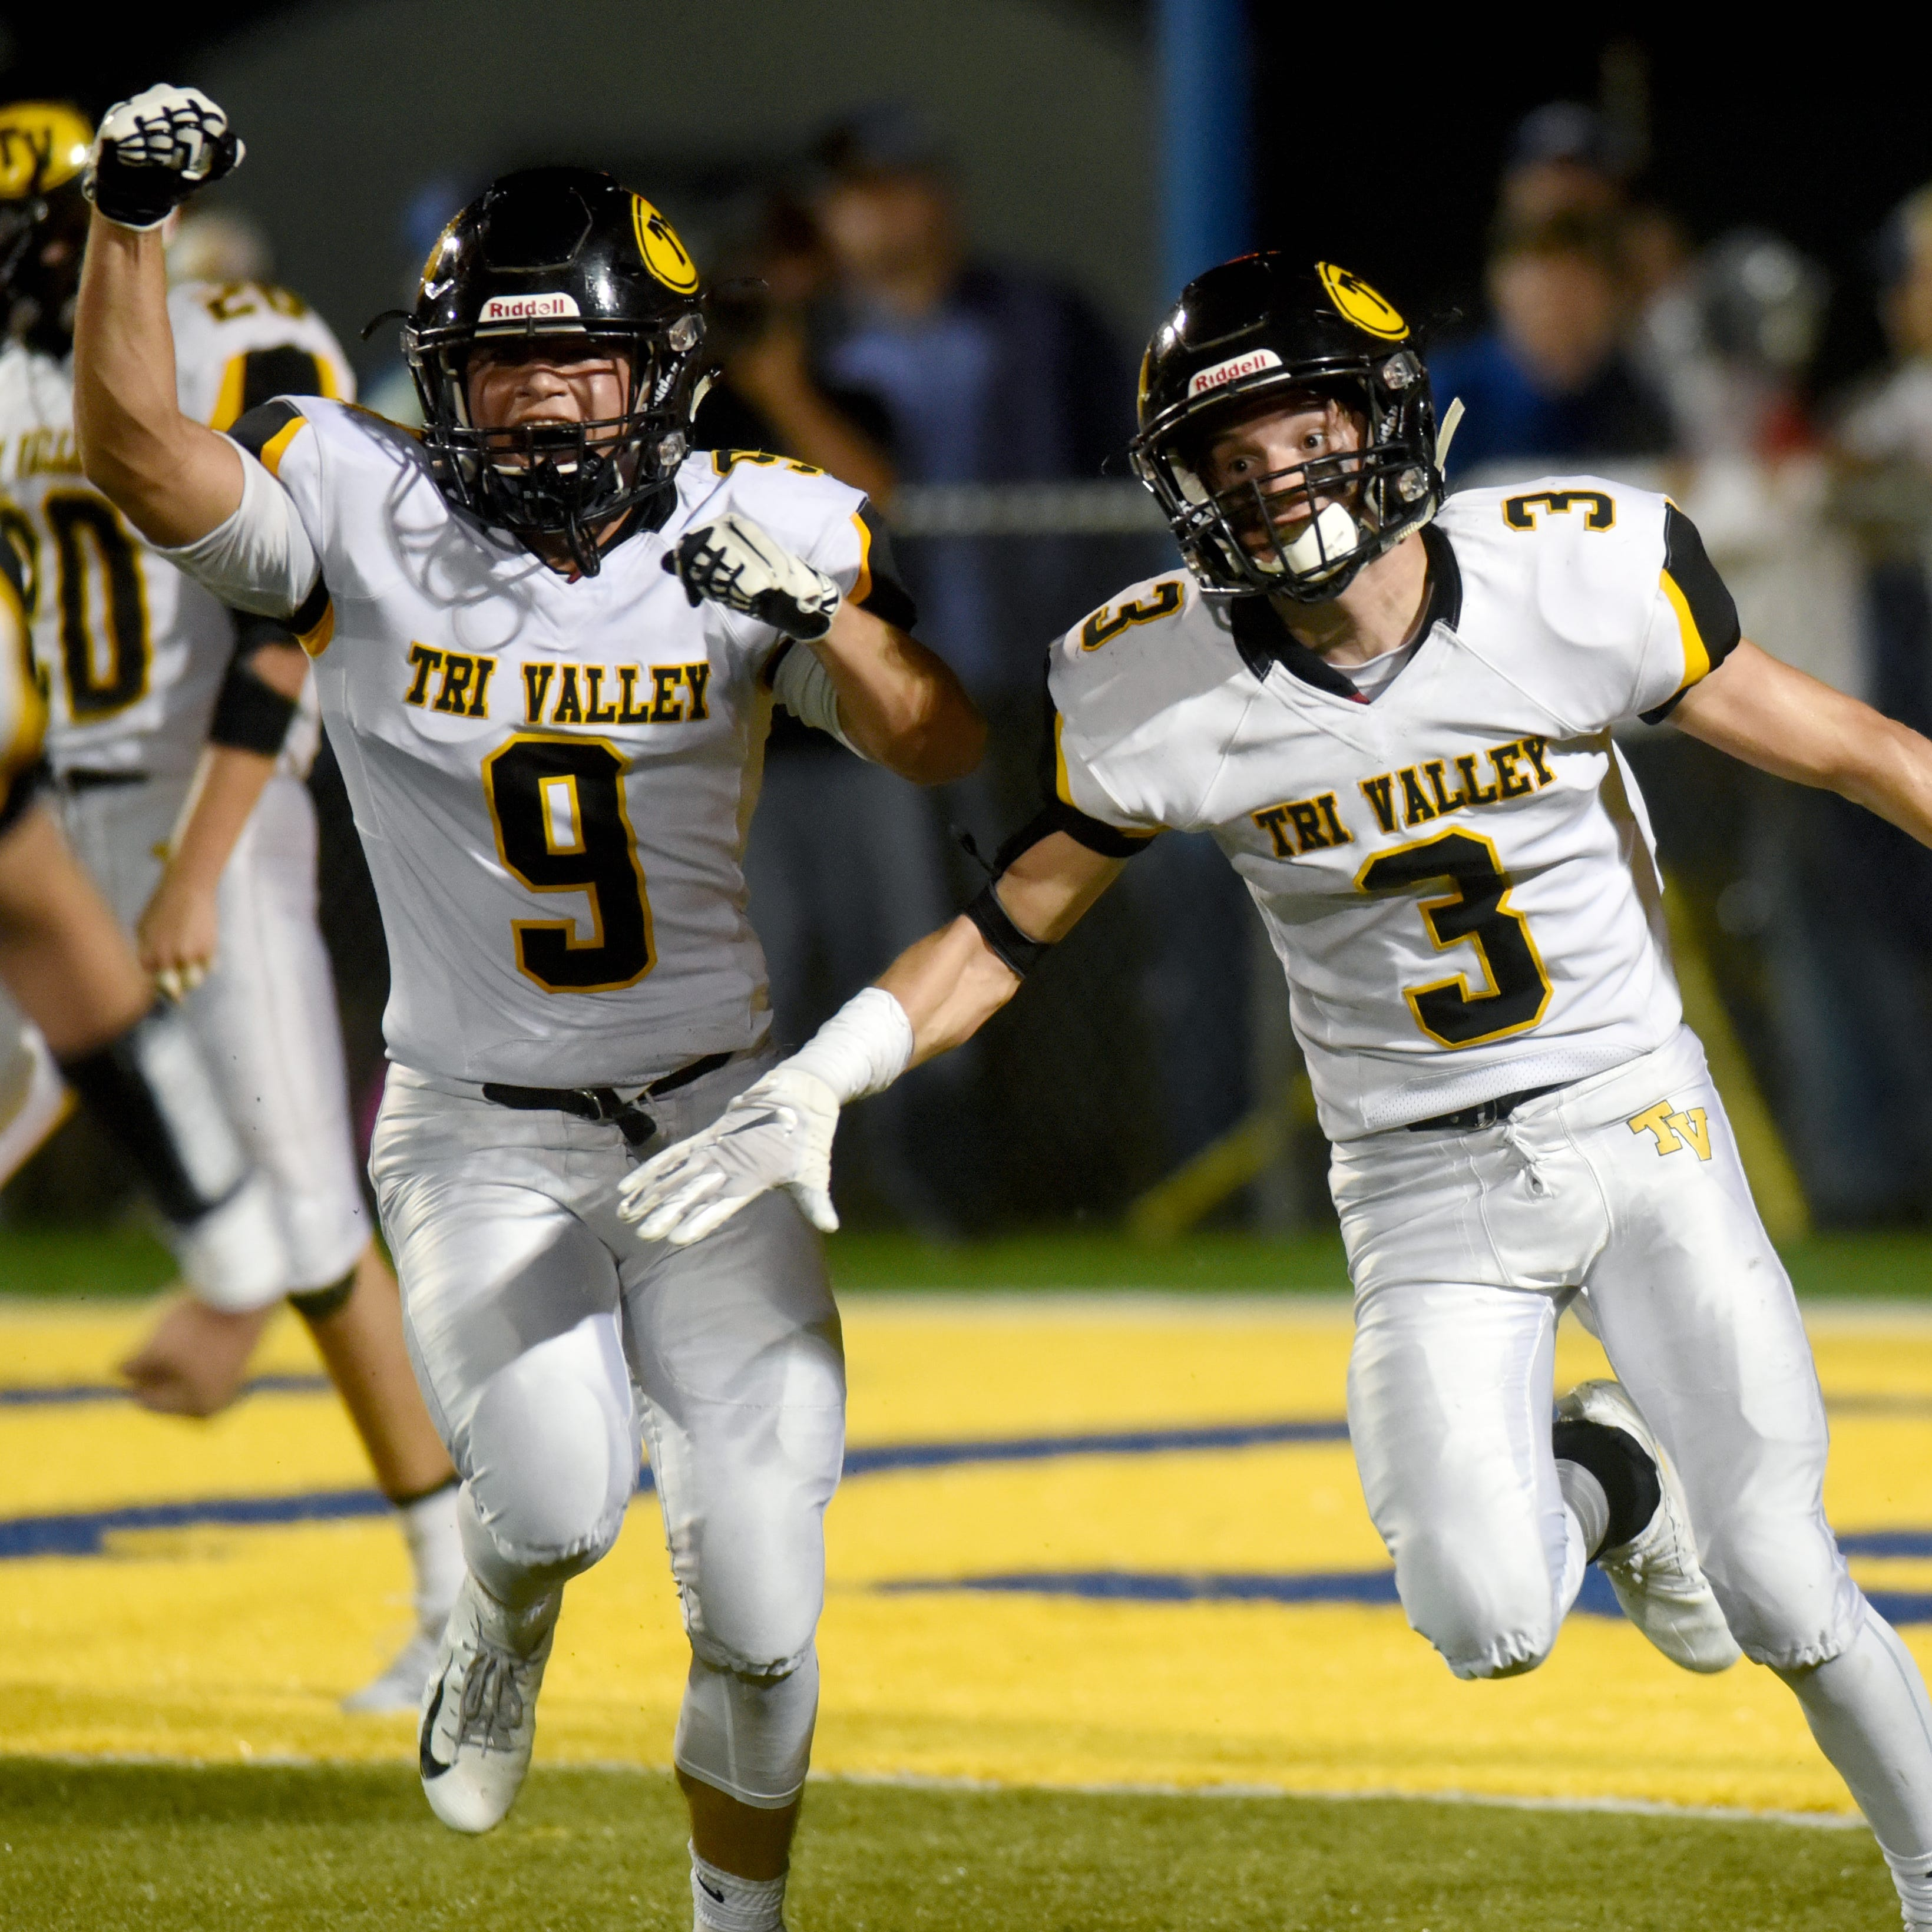 Still standing: Tri-Valley stays unbeaten, but it wasn't easy